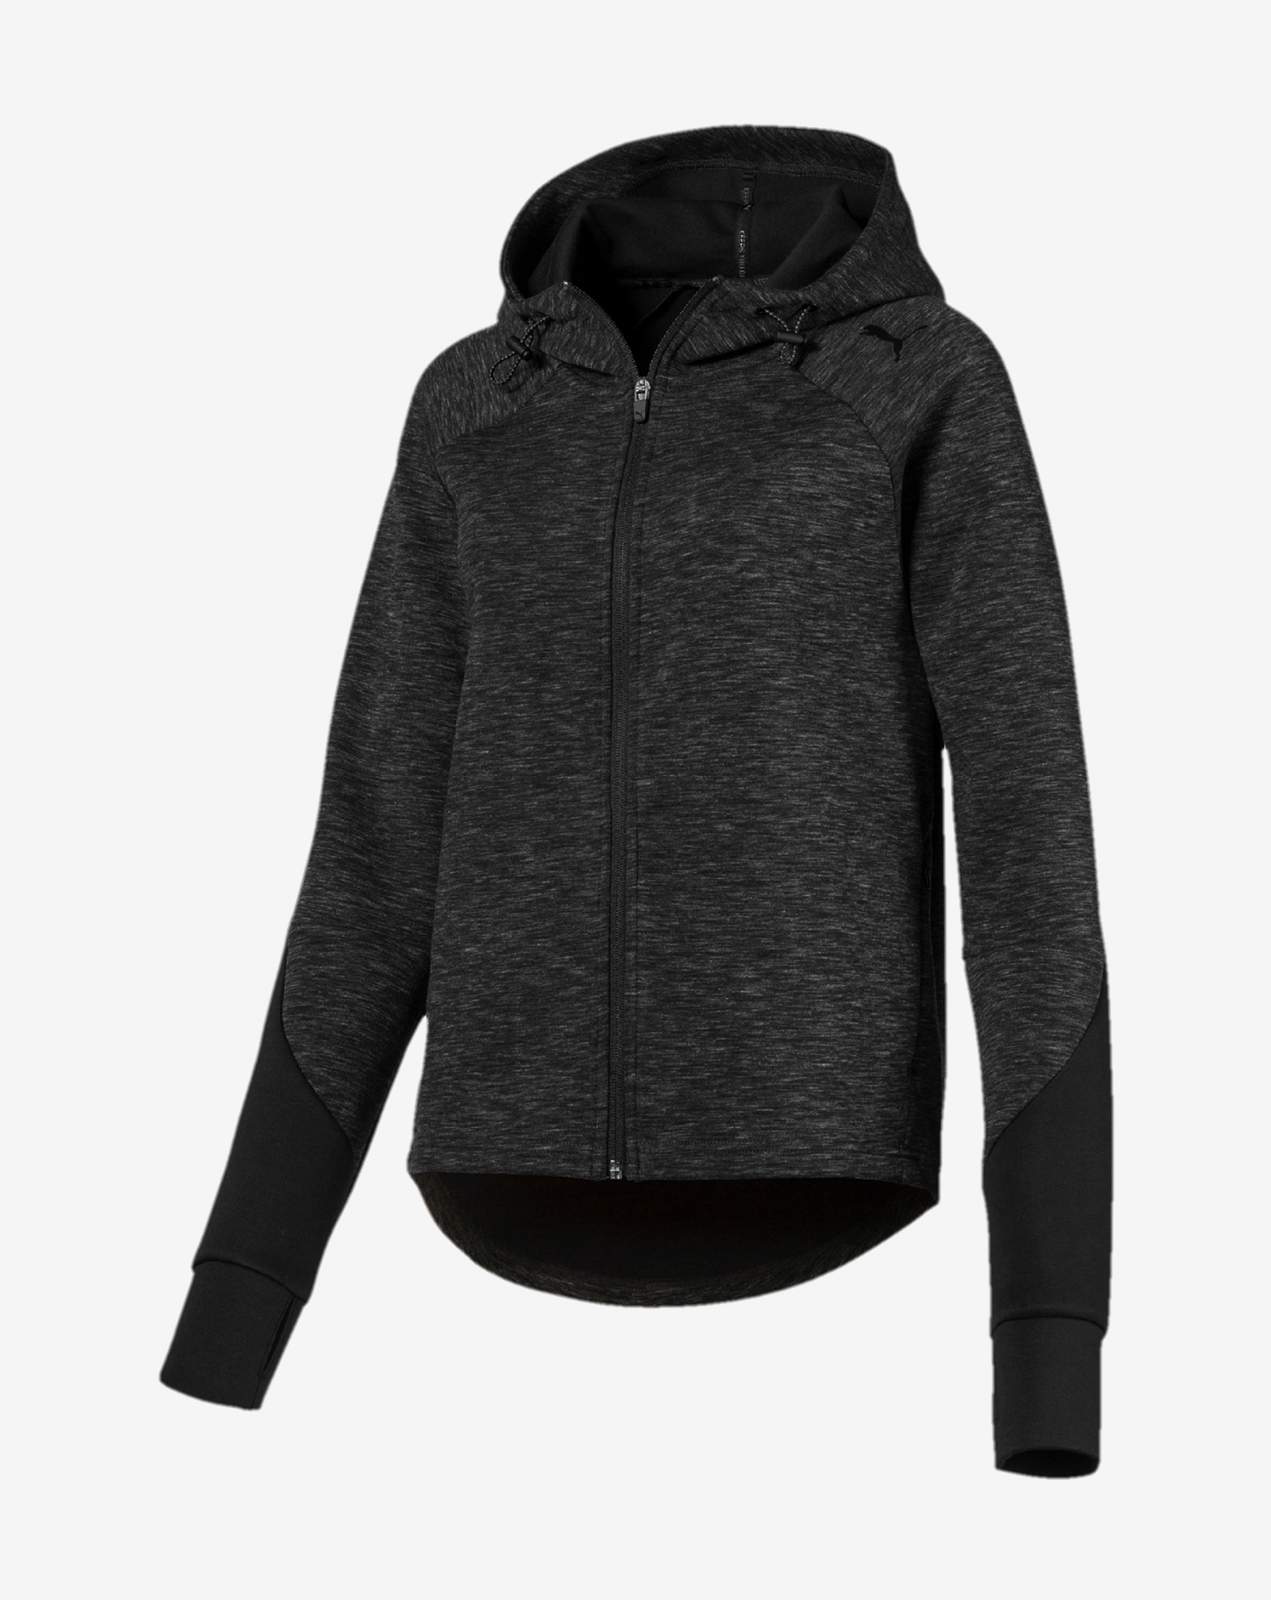 detail EVOSTRIPE FZ Hoody Cotton Black-heather